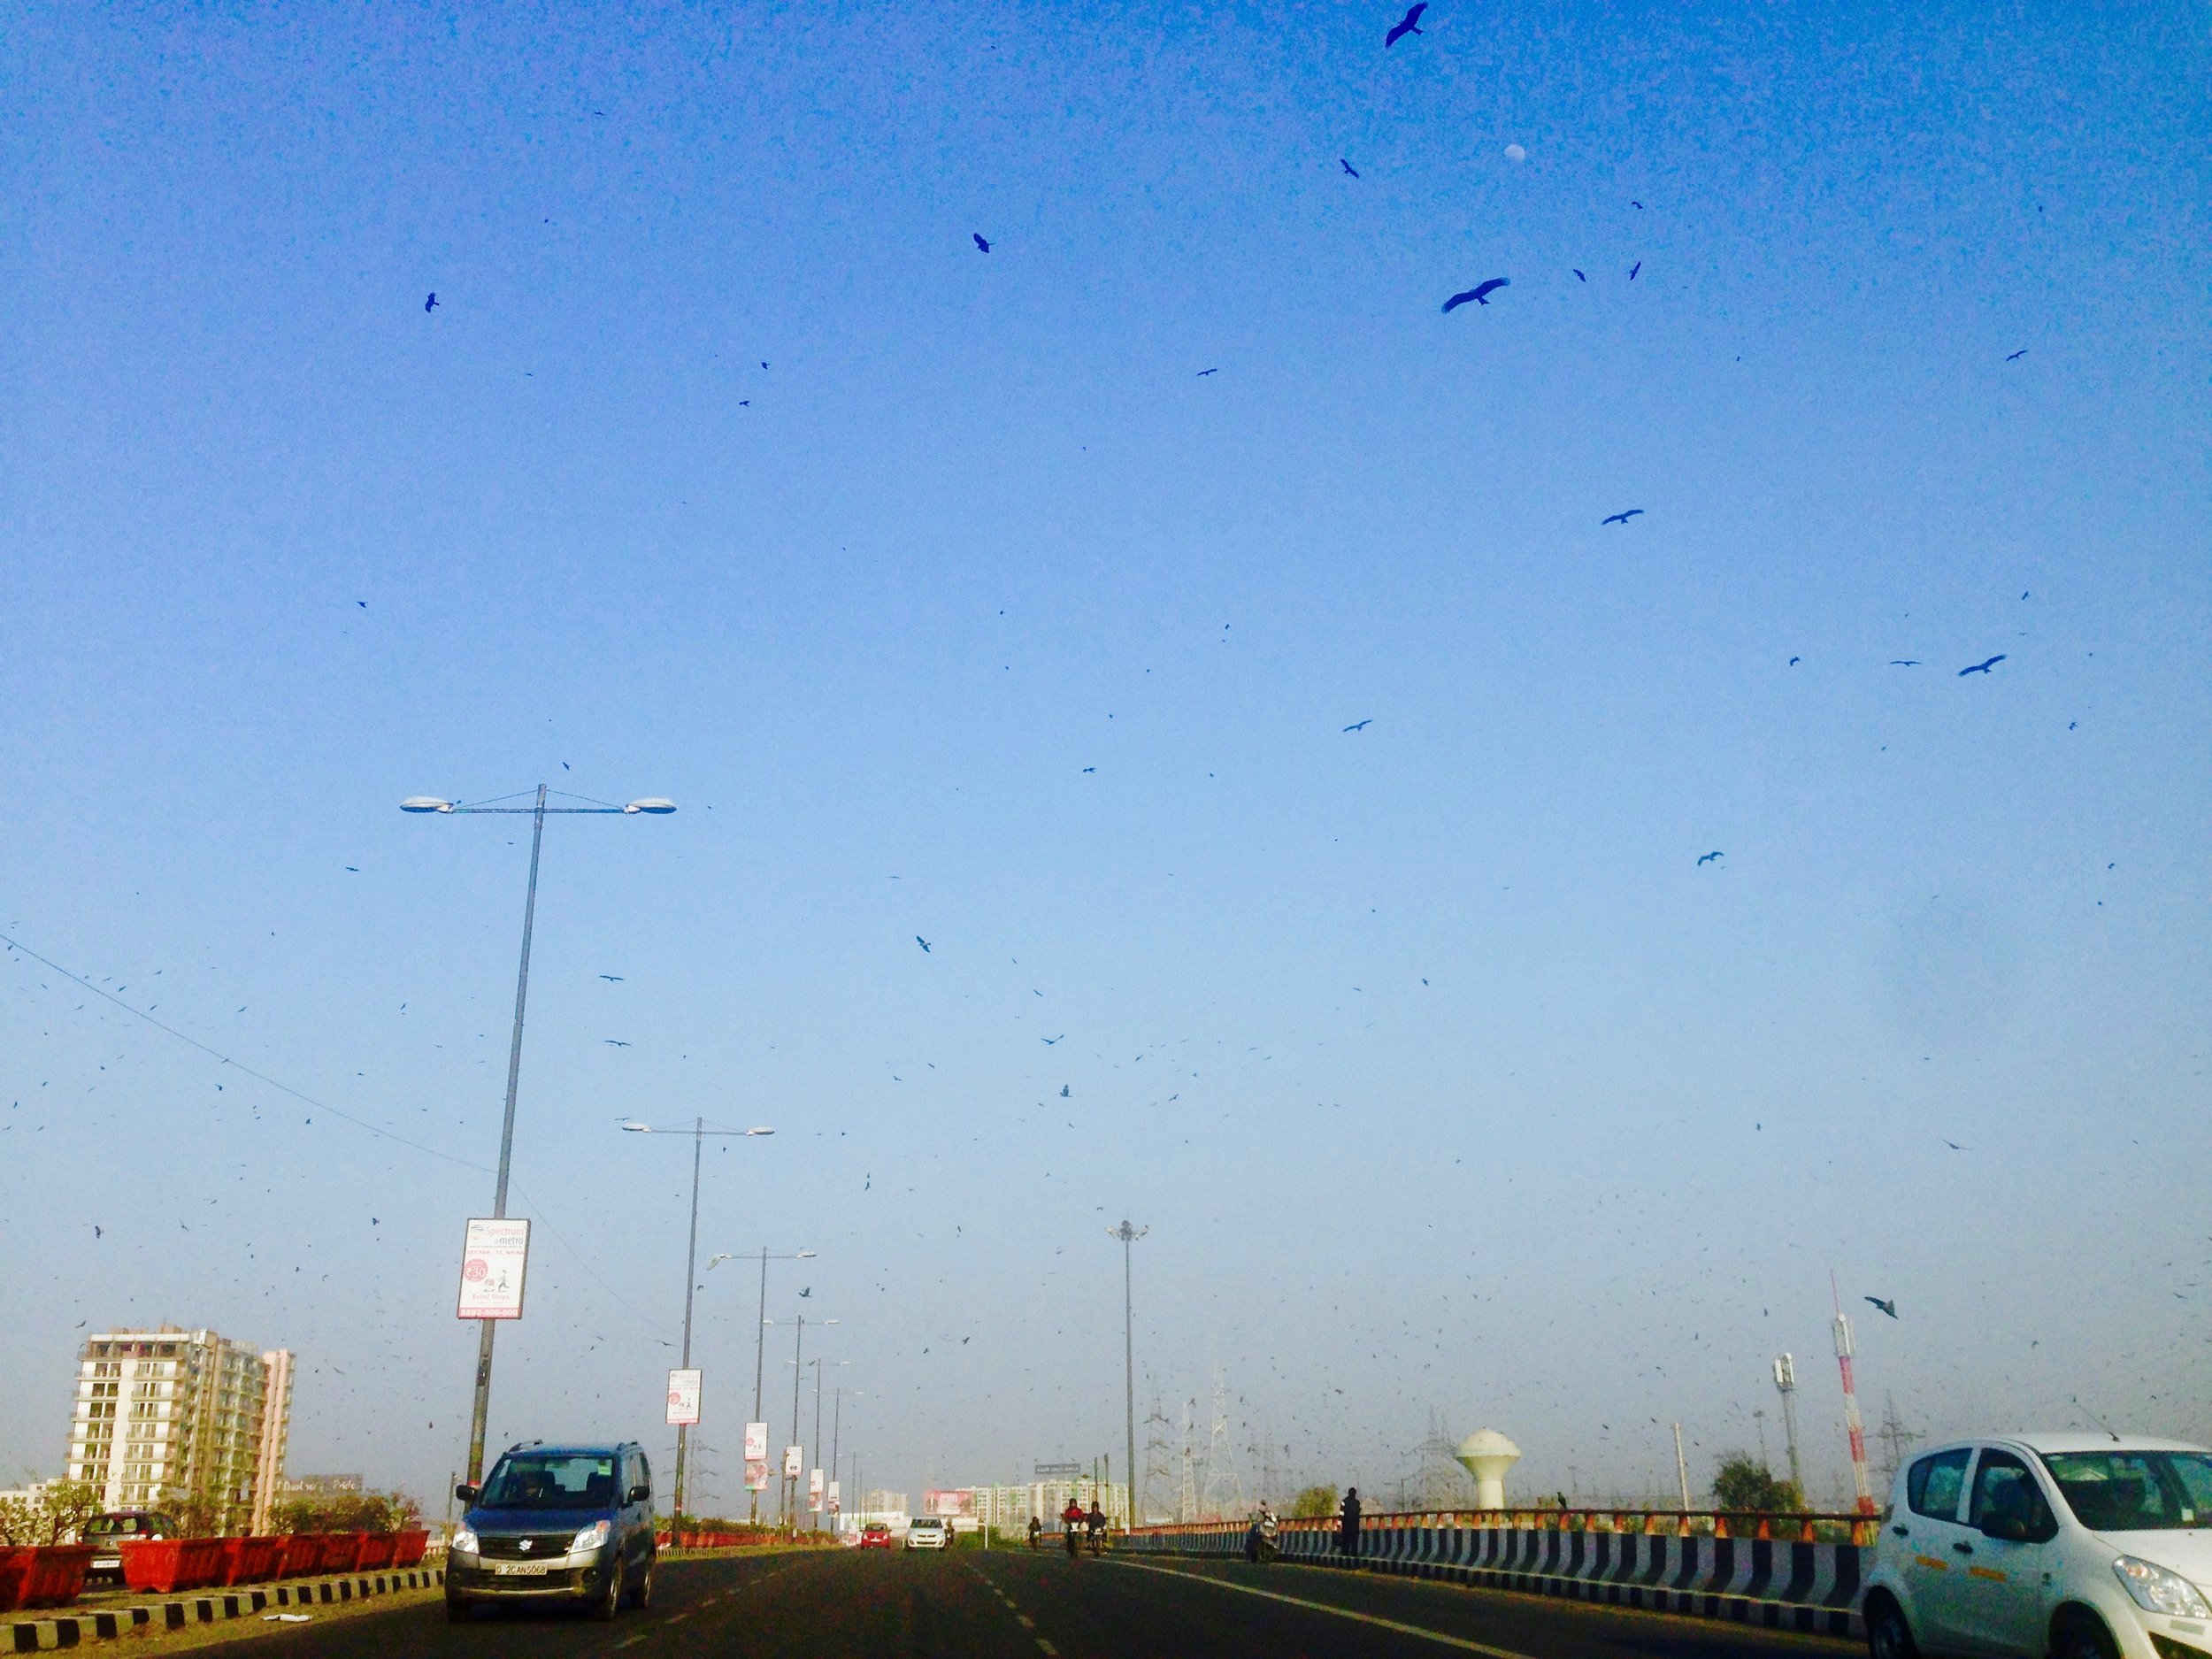 En route to the airport in Delhi, driving through a giant mass of birds (possible foreshadowing of what's to come in Bali?)